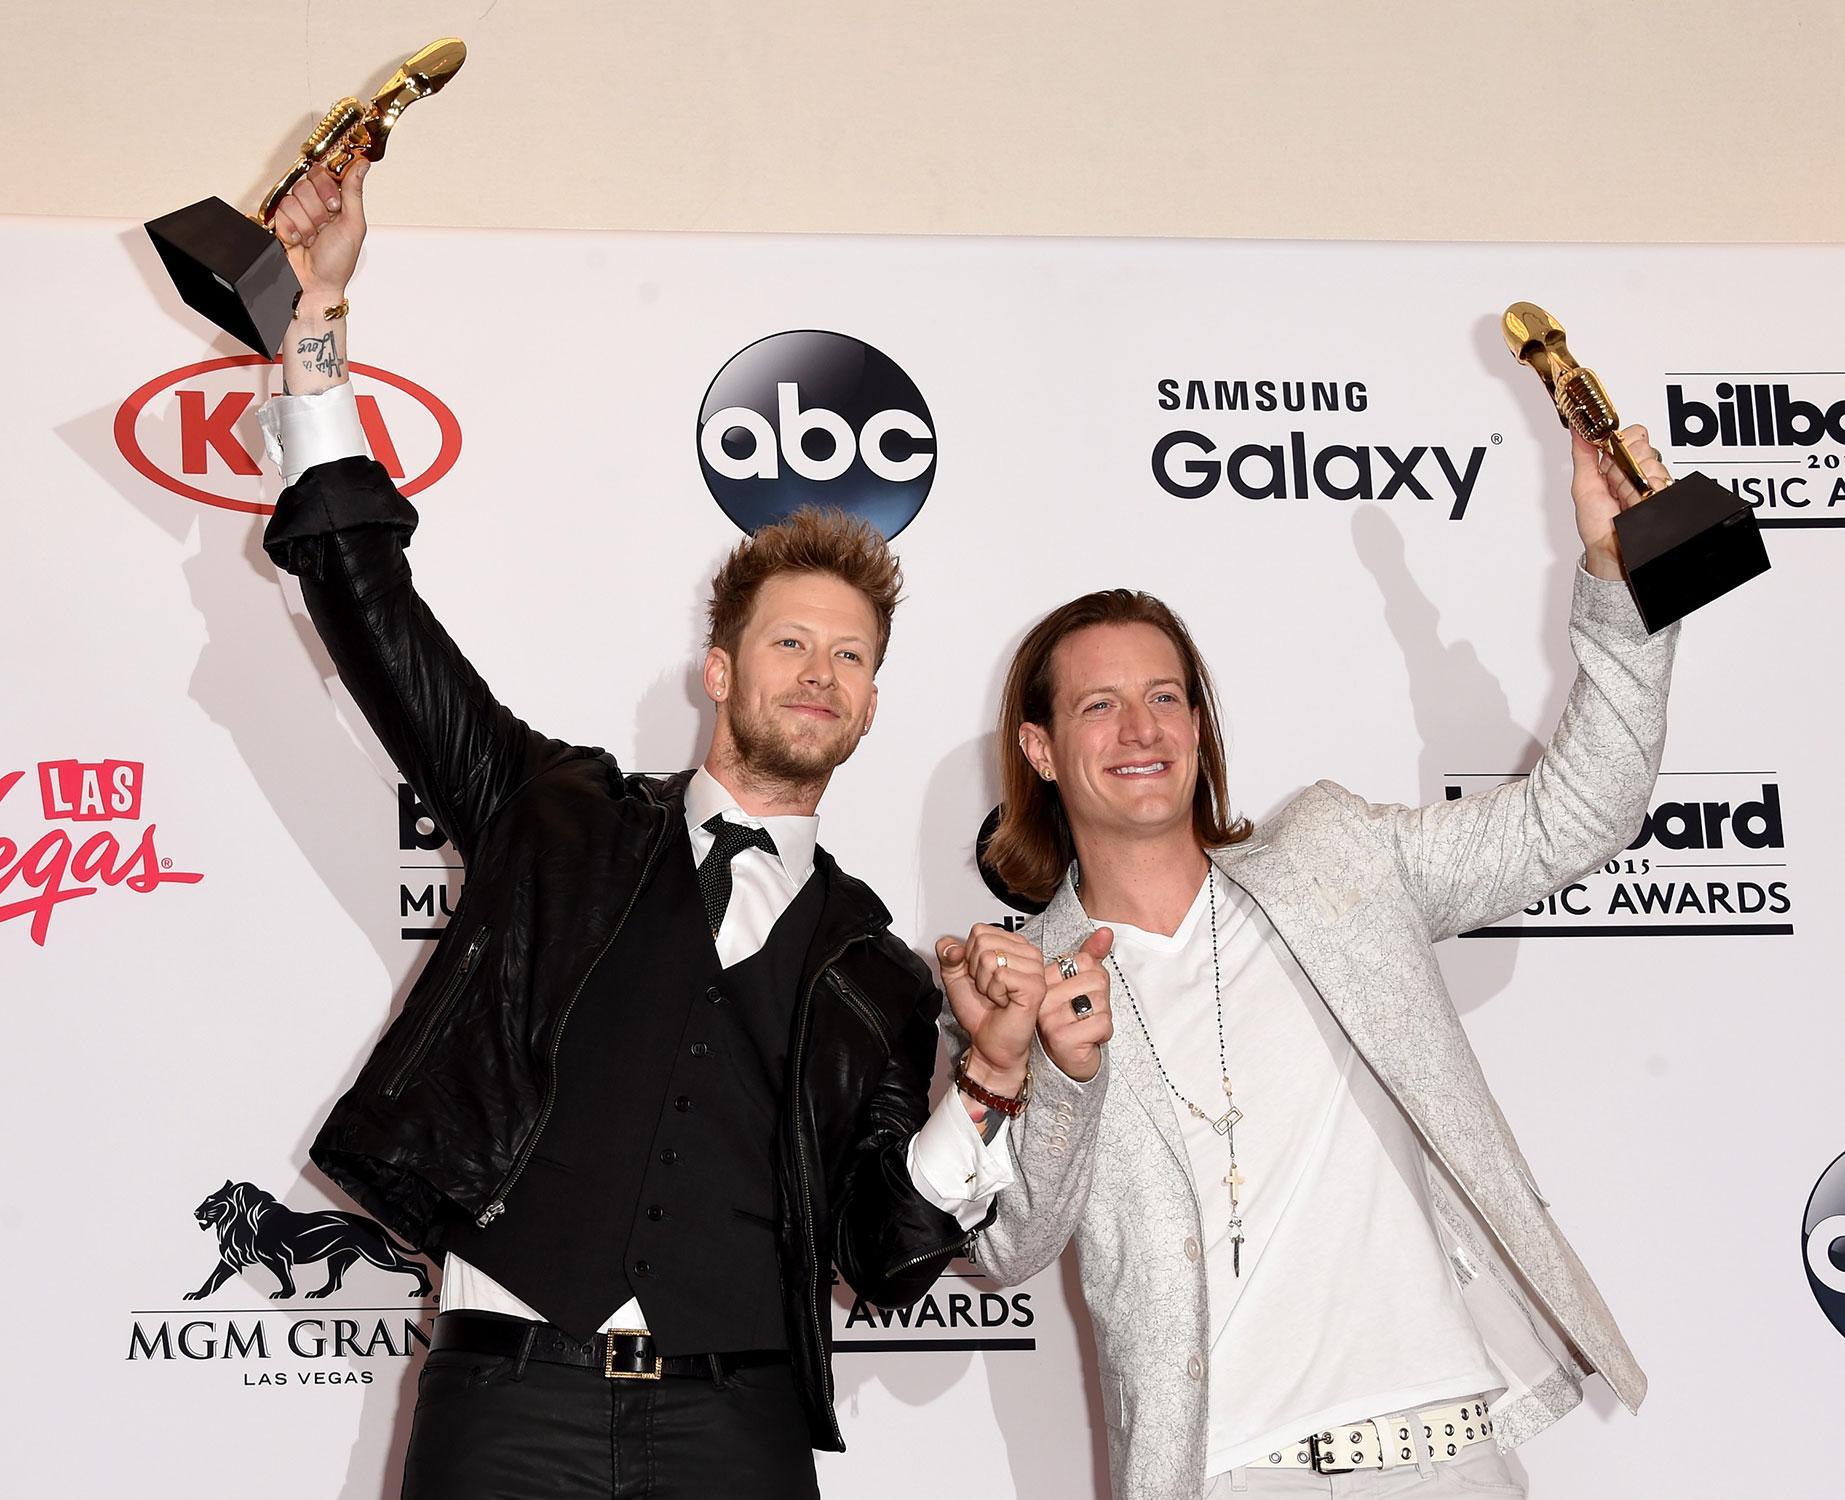 Billboard Music Awards 2015 Recap